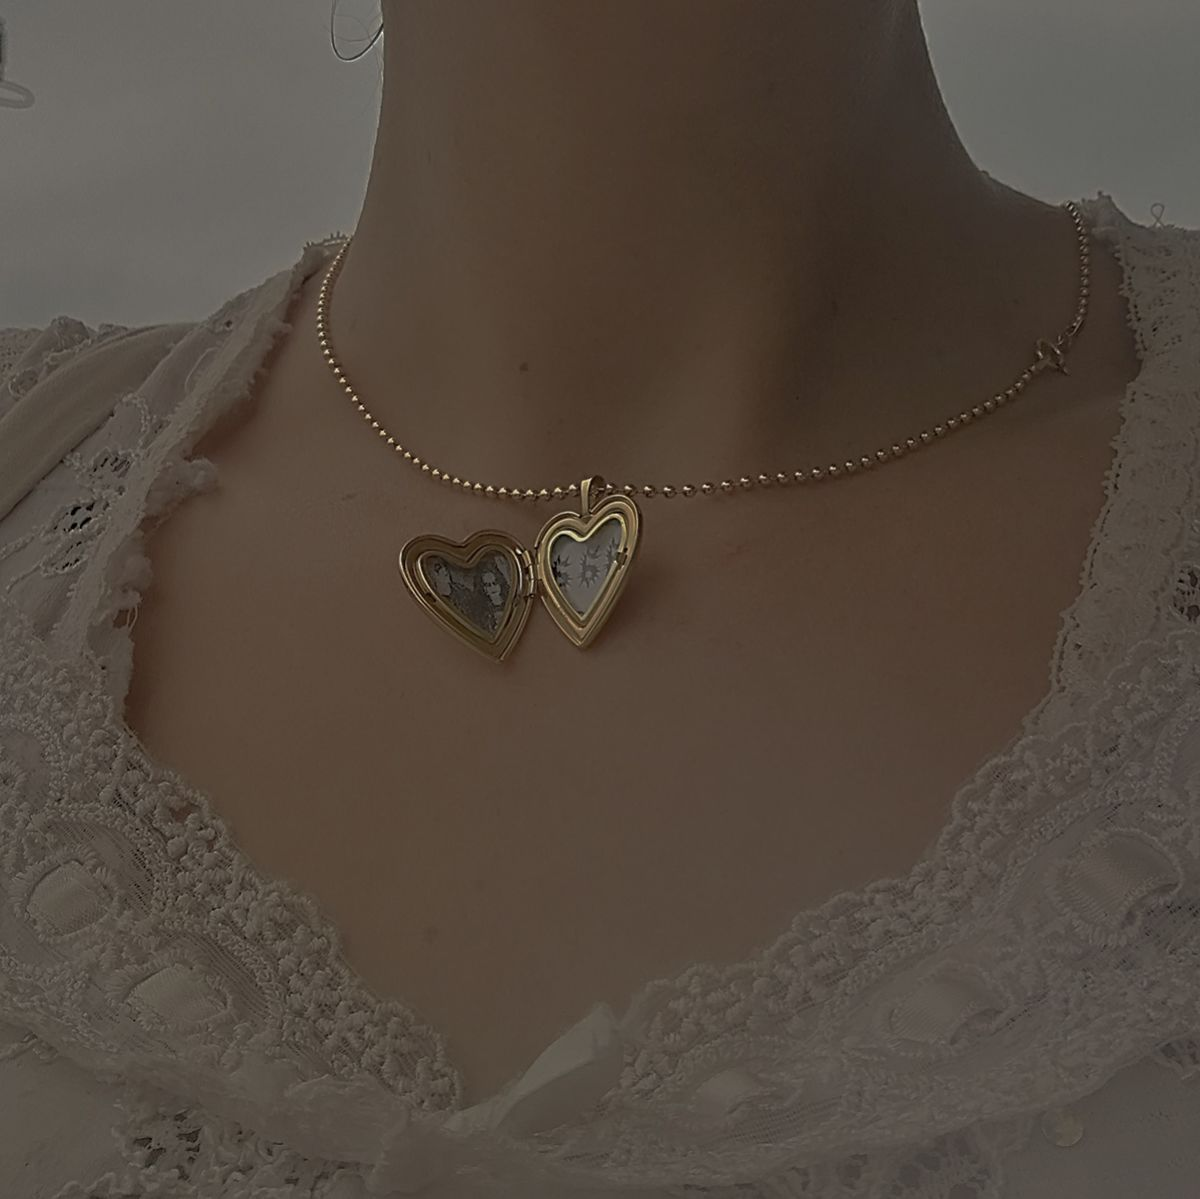 Deathcrush Heart Locket Pendant - product images  of